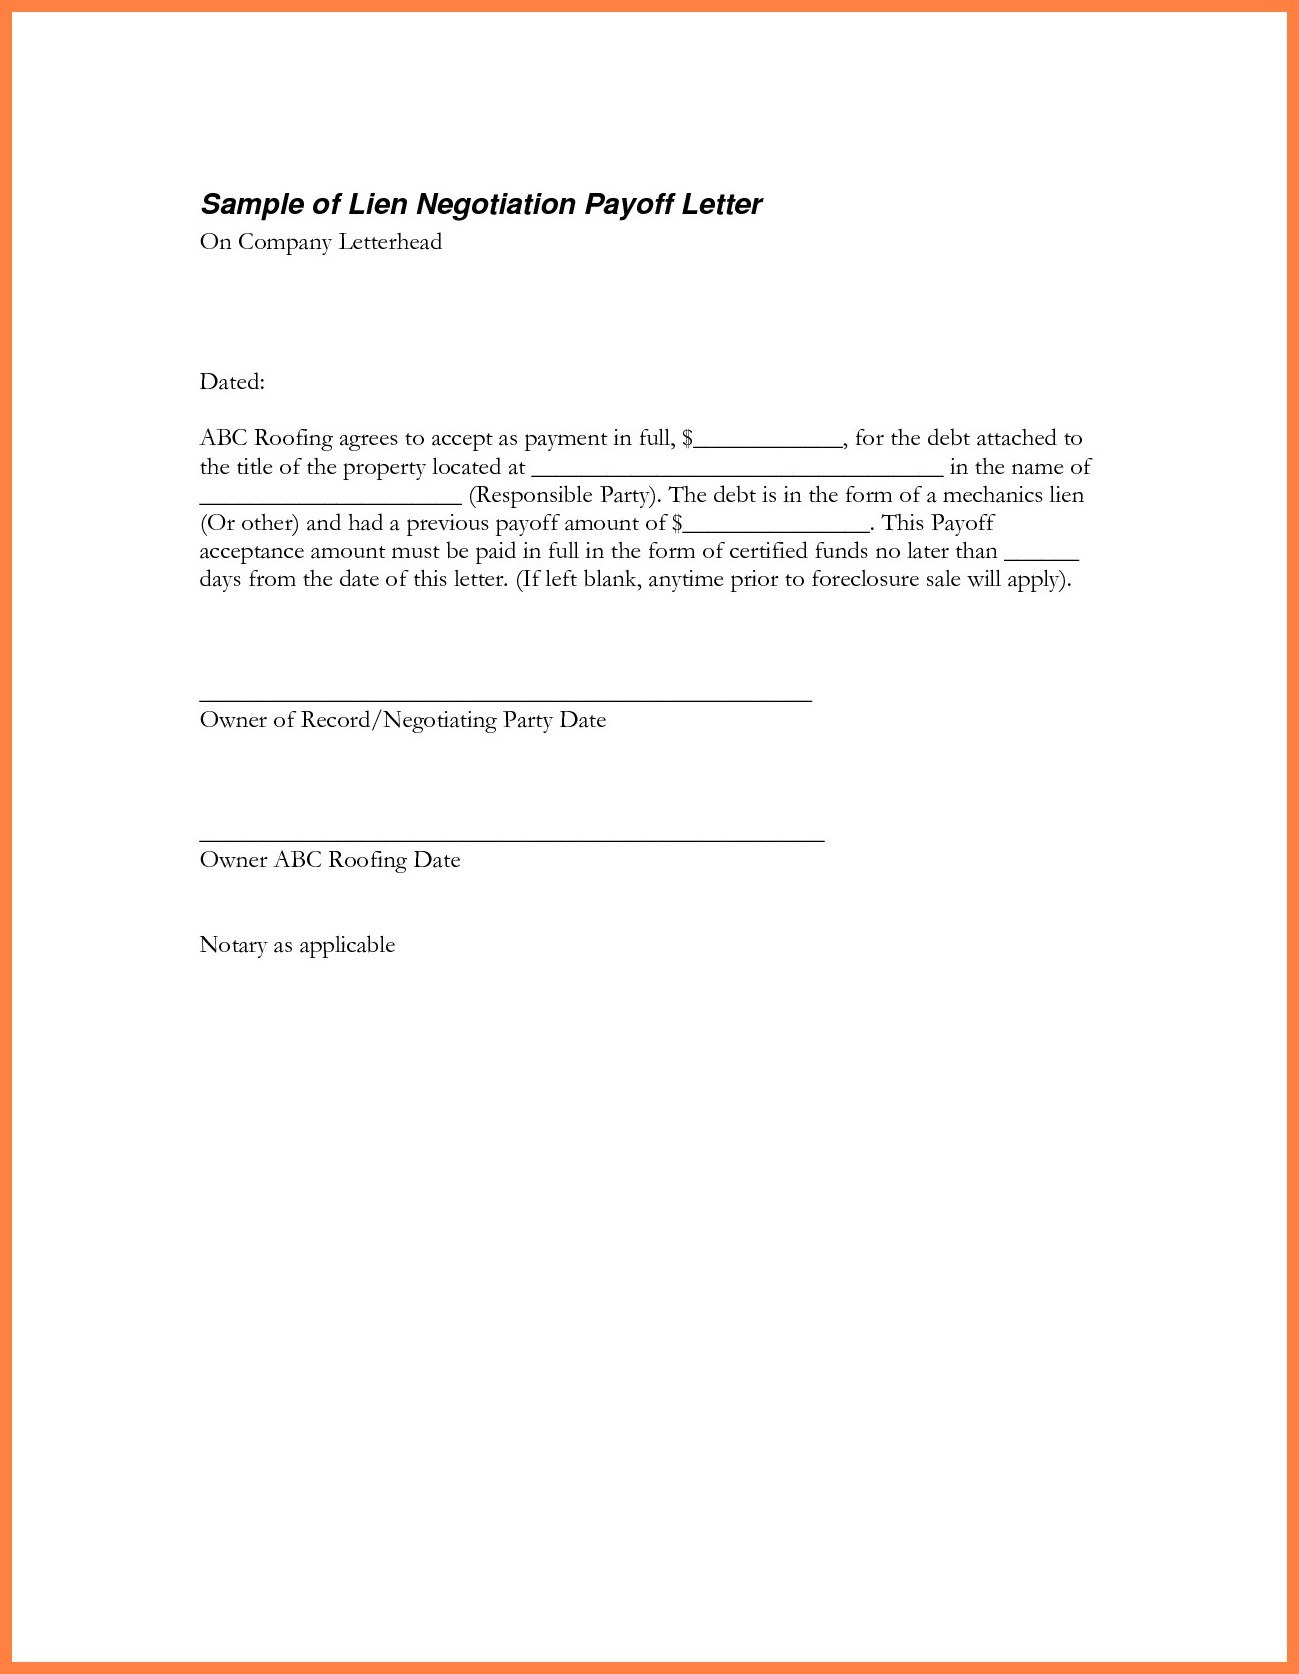 Loan Payoff Letter  Heleenvandenhombergh With Regard To Payoff Letter Template